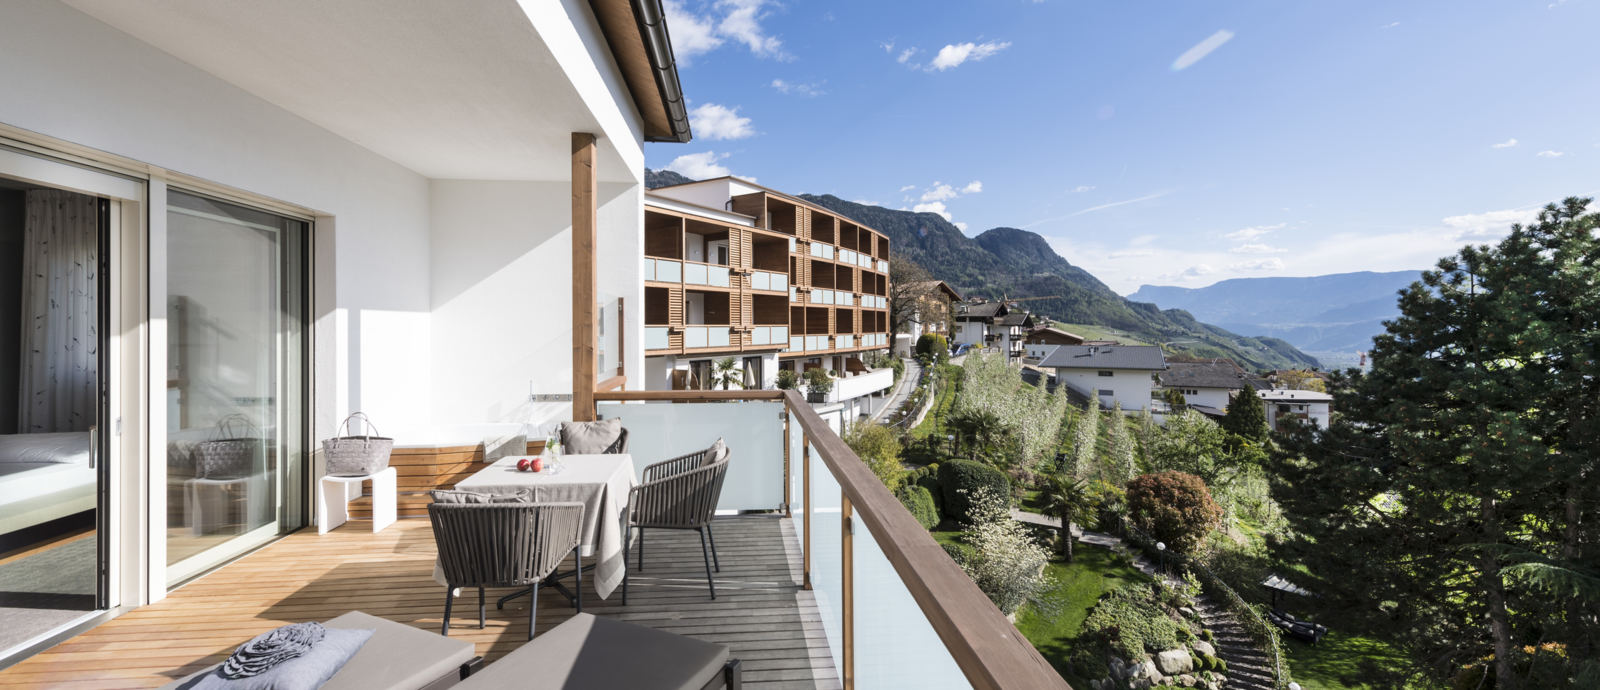 Beautiful rooms and suites Hotel Hohenwart, Schenna, South Tyrol